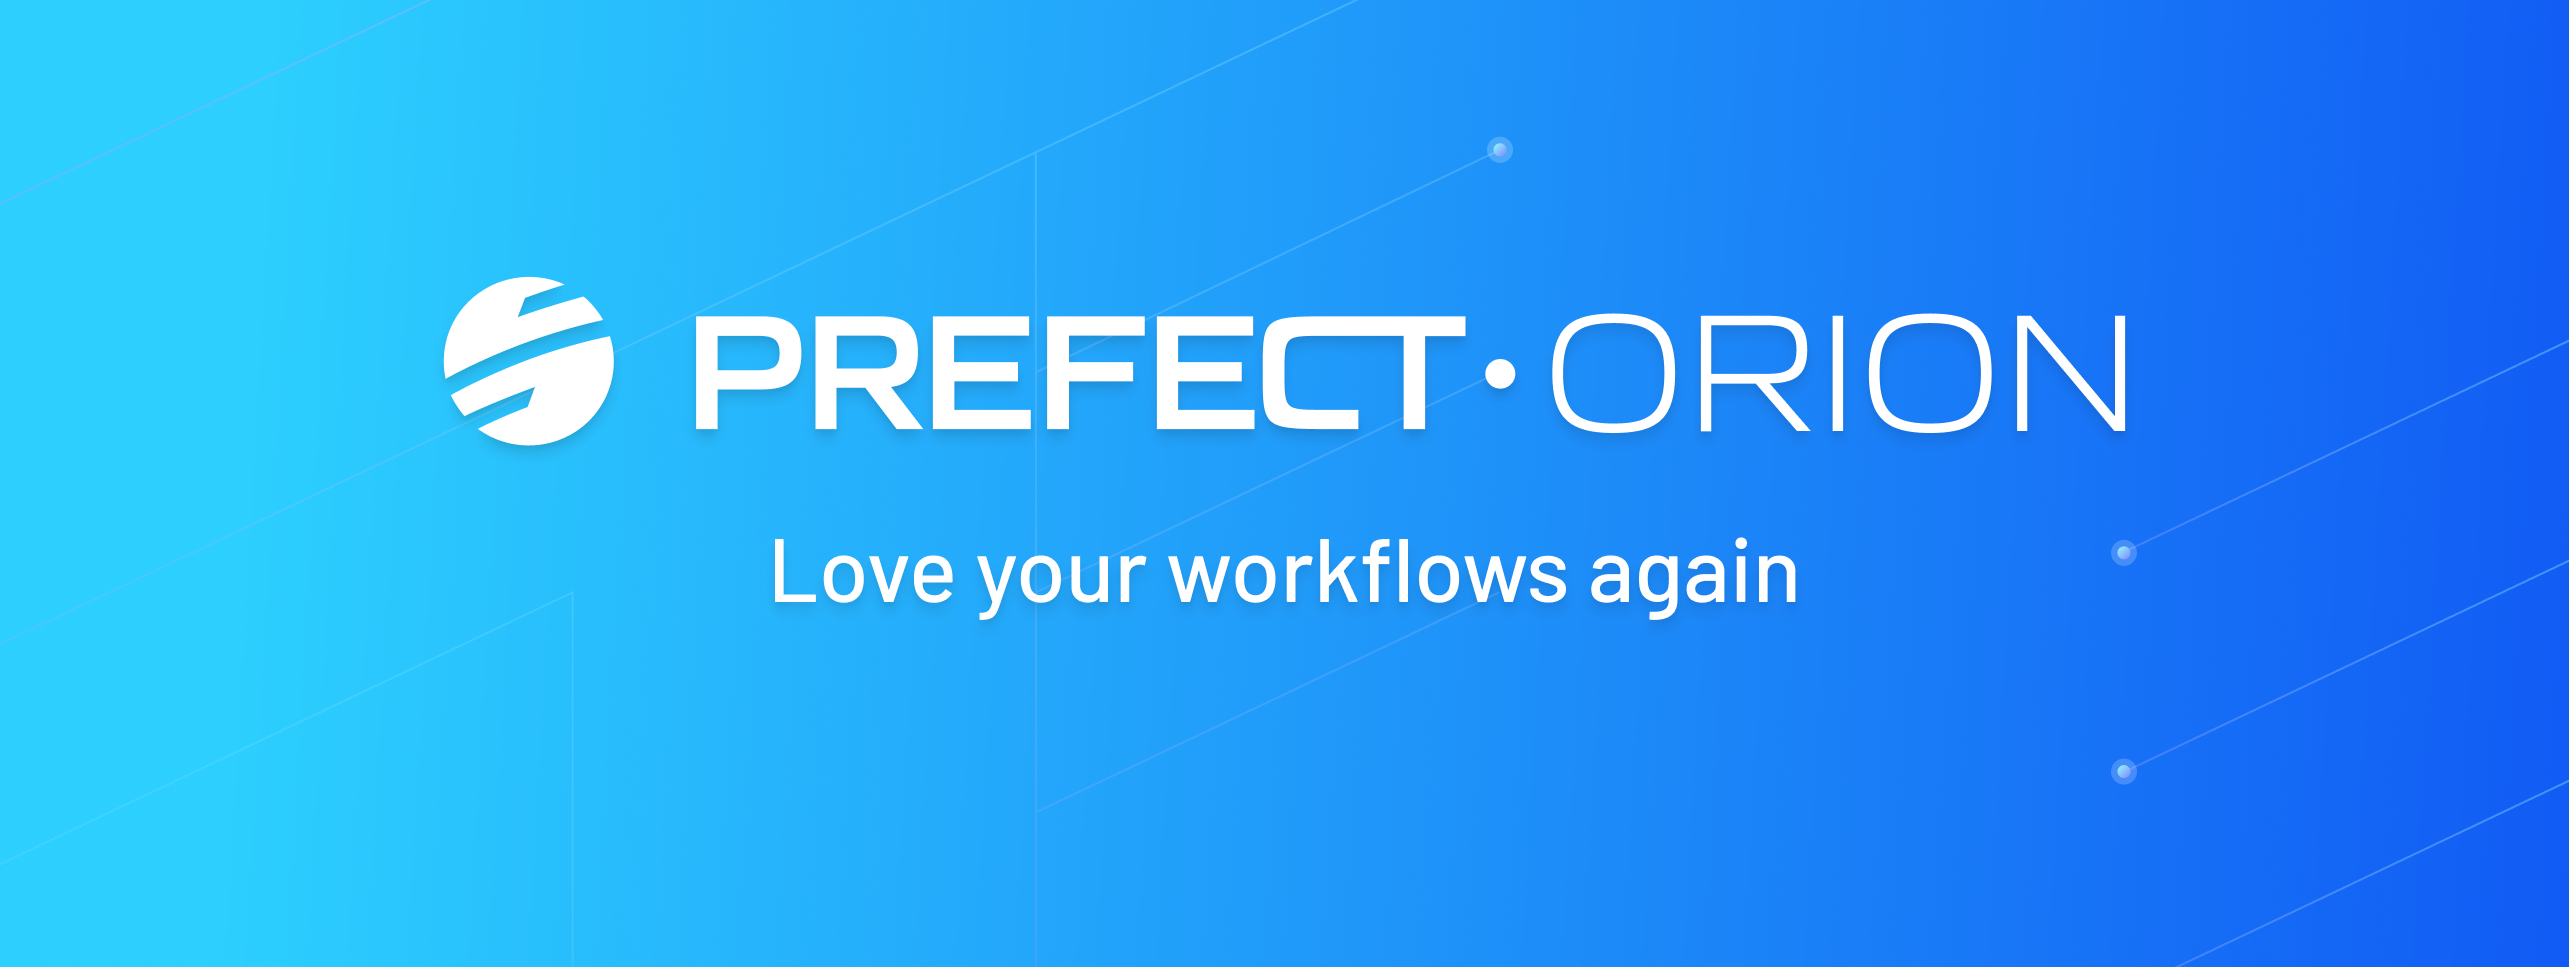 Prefect Orion: Our Second-Generation Workflow Engine. Love your workflows again